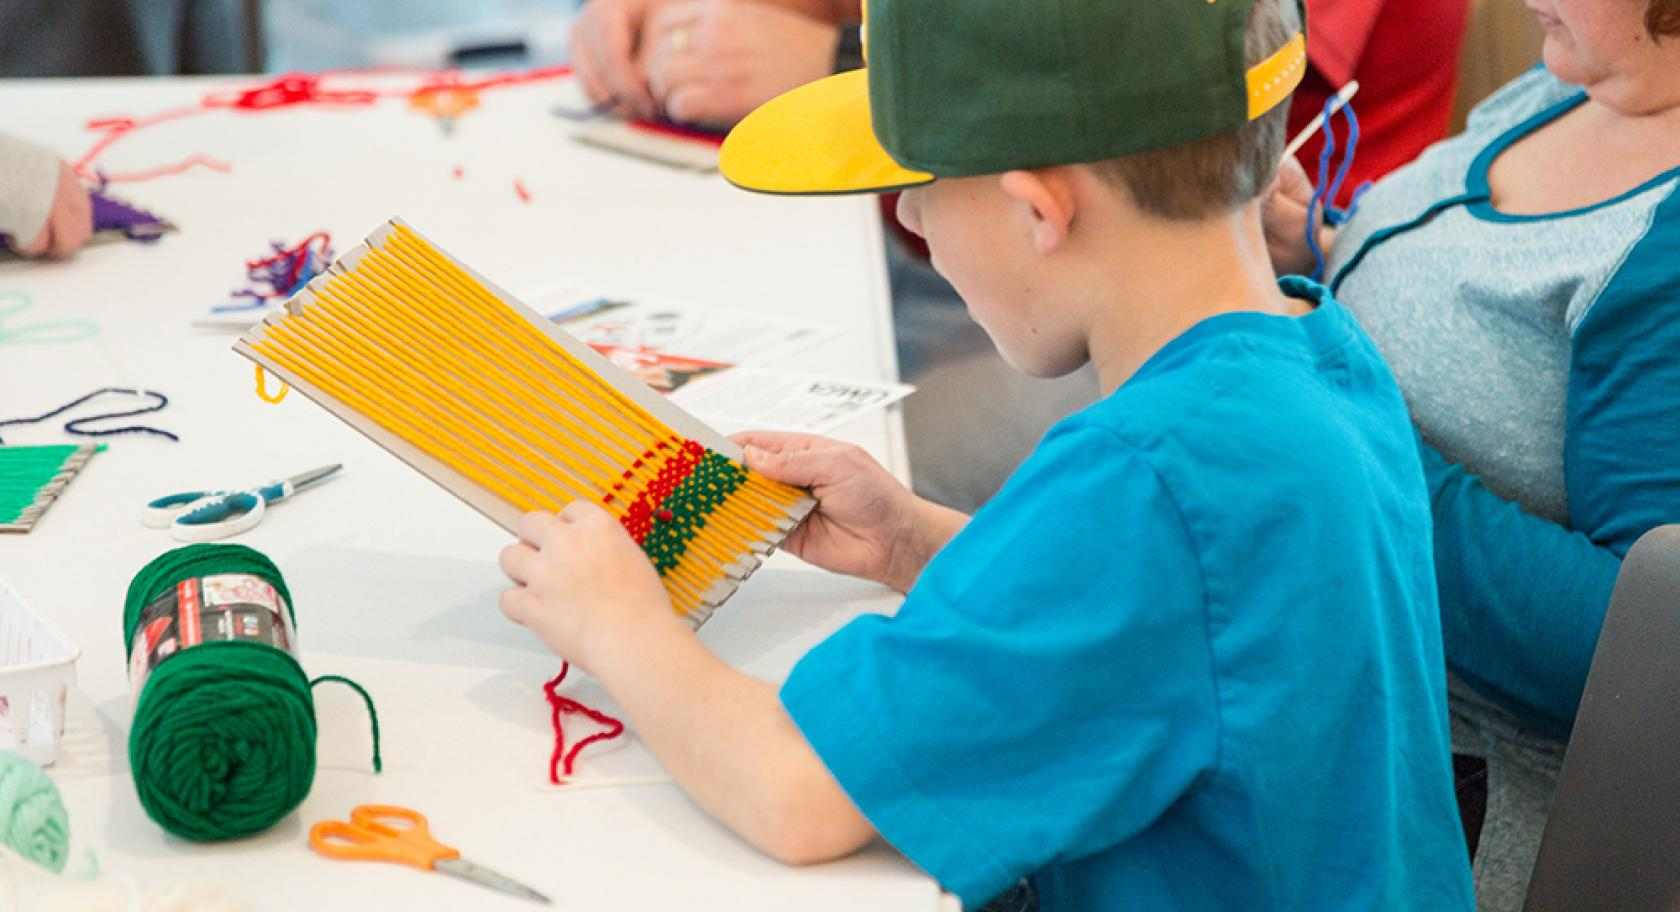 Boy in blue shirt and green and yellow baseball hat weaving a matching opt holder on cardboard loom